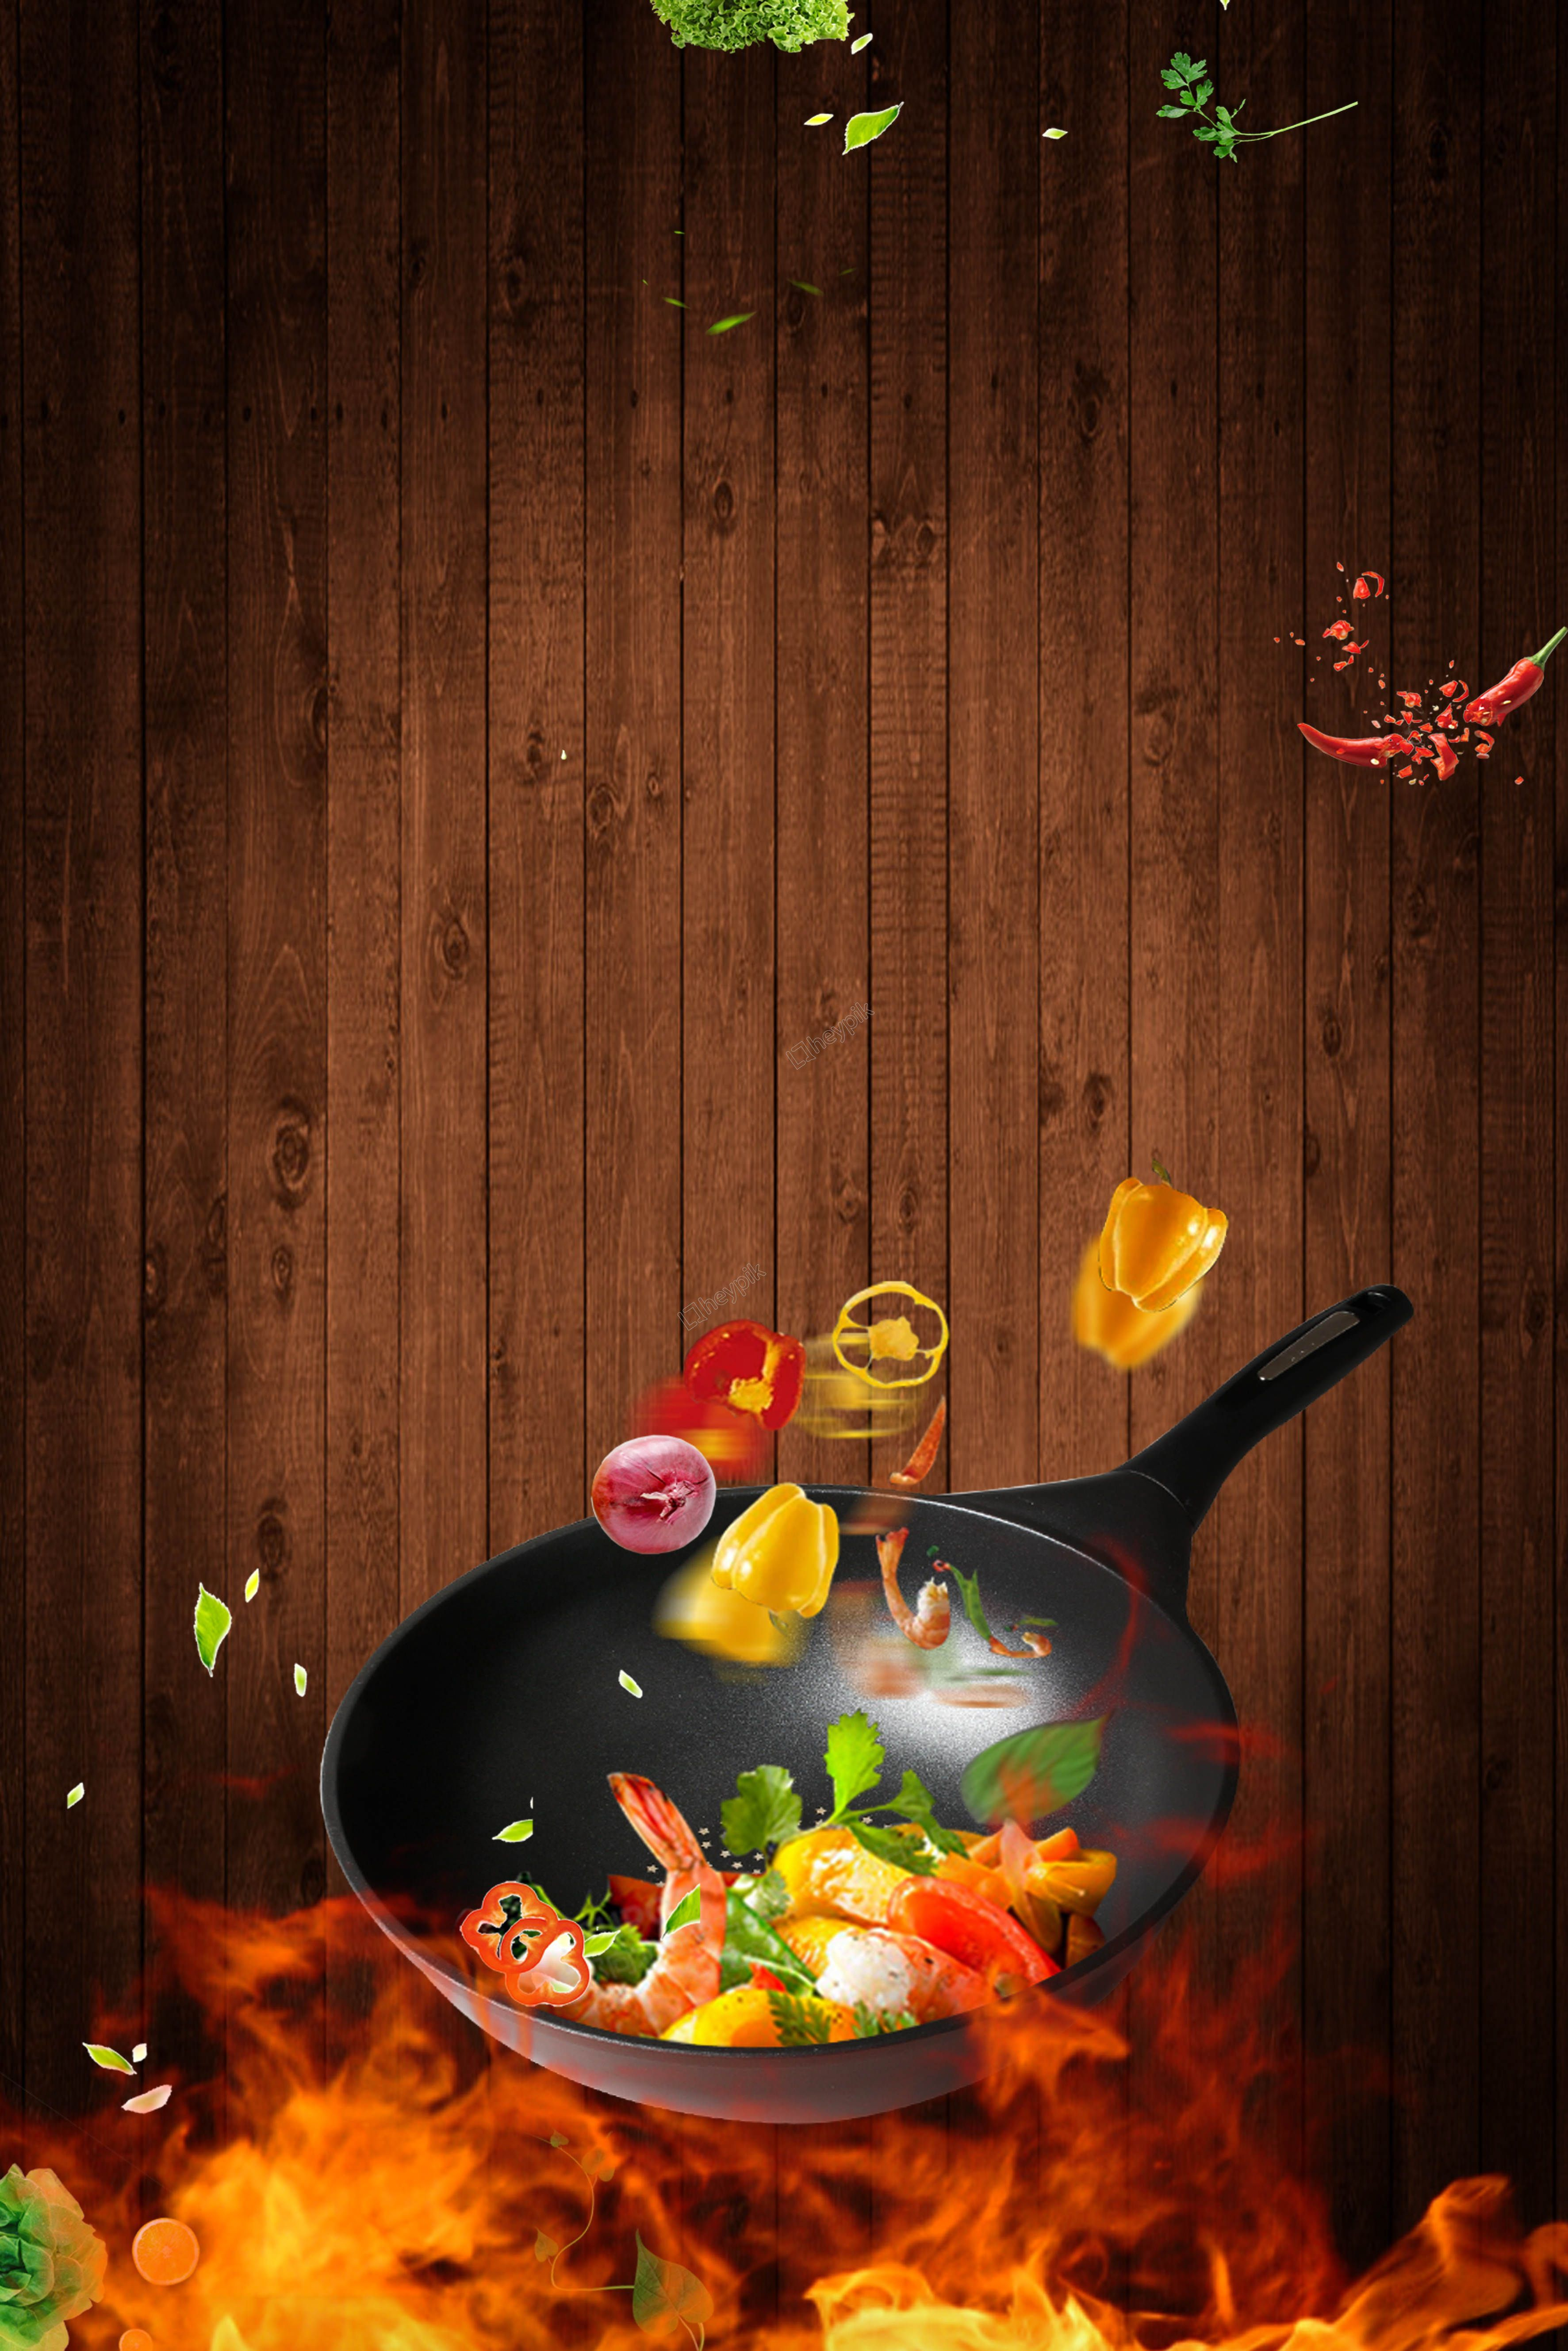 Advertising Background Stirfried Synthetic Creative Catering Stirfrystir Fried Creative Synthetic Stir F Food Poster Food Poster Design Food Menu Design